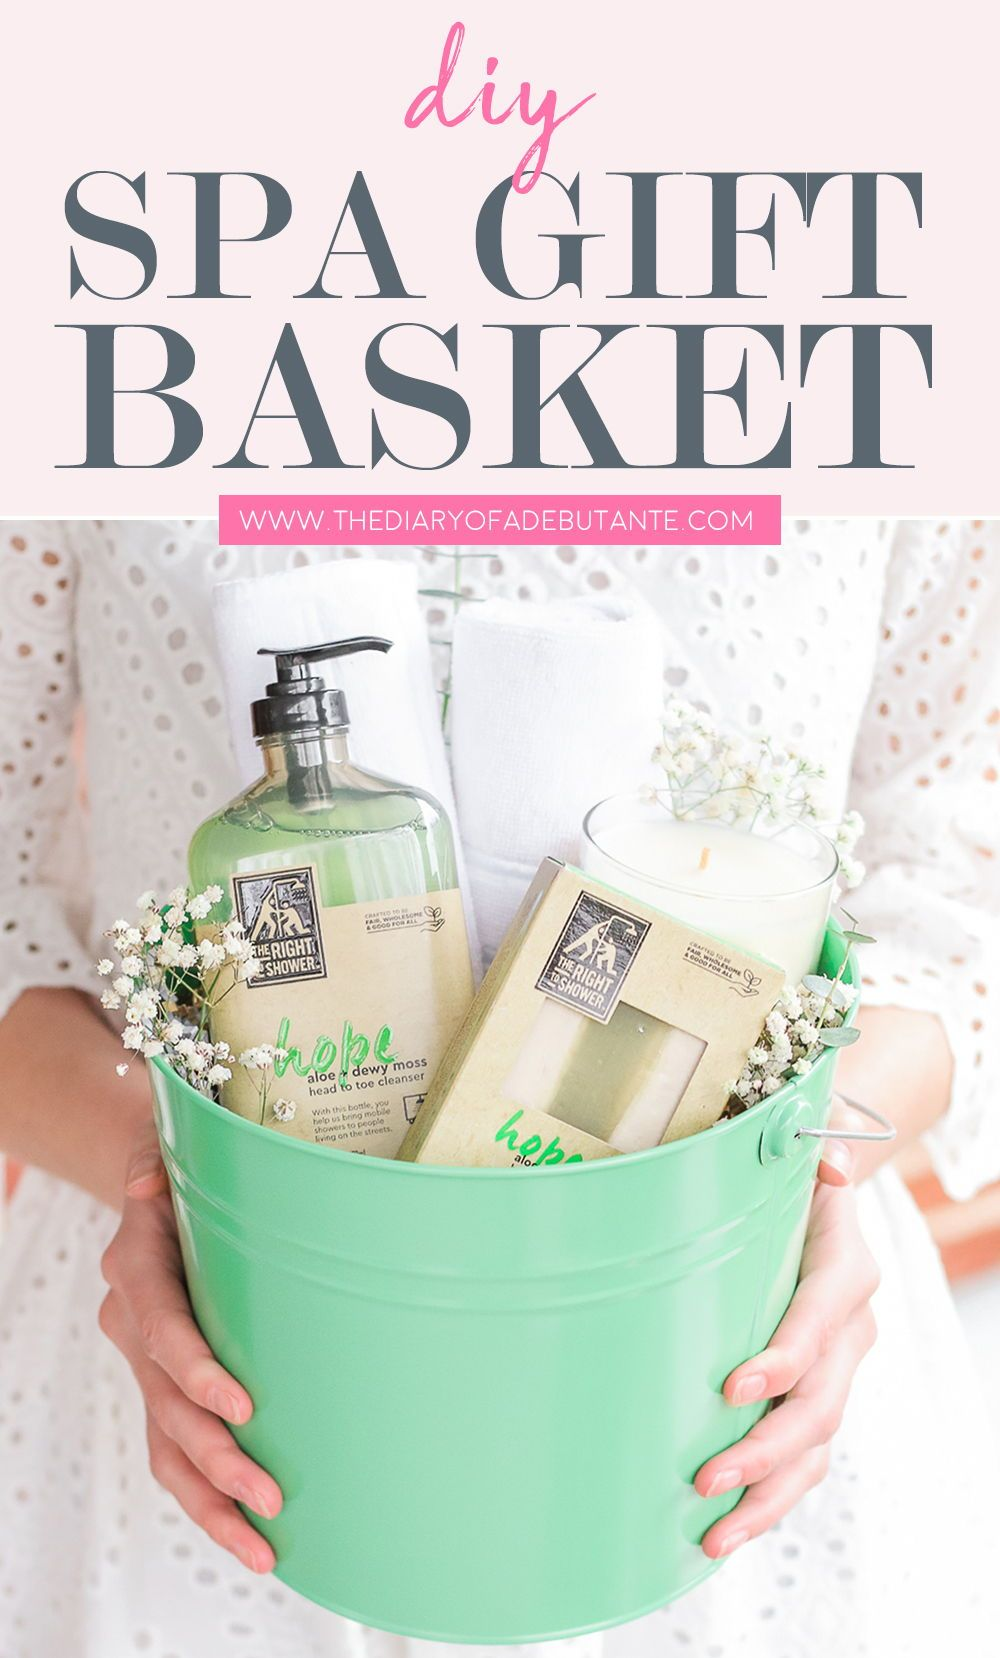 Cruelty Free Beauty Review The Right To Shower Products Cruelty Free Beauty Diy Spa Gifts Baskets Spa Gifts